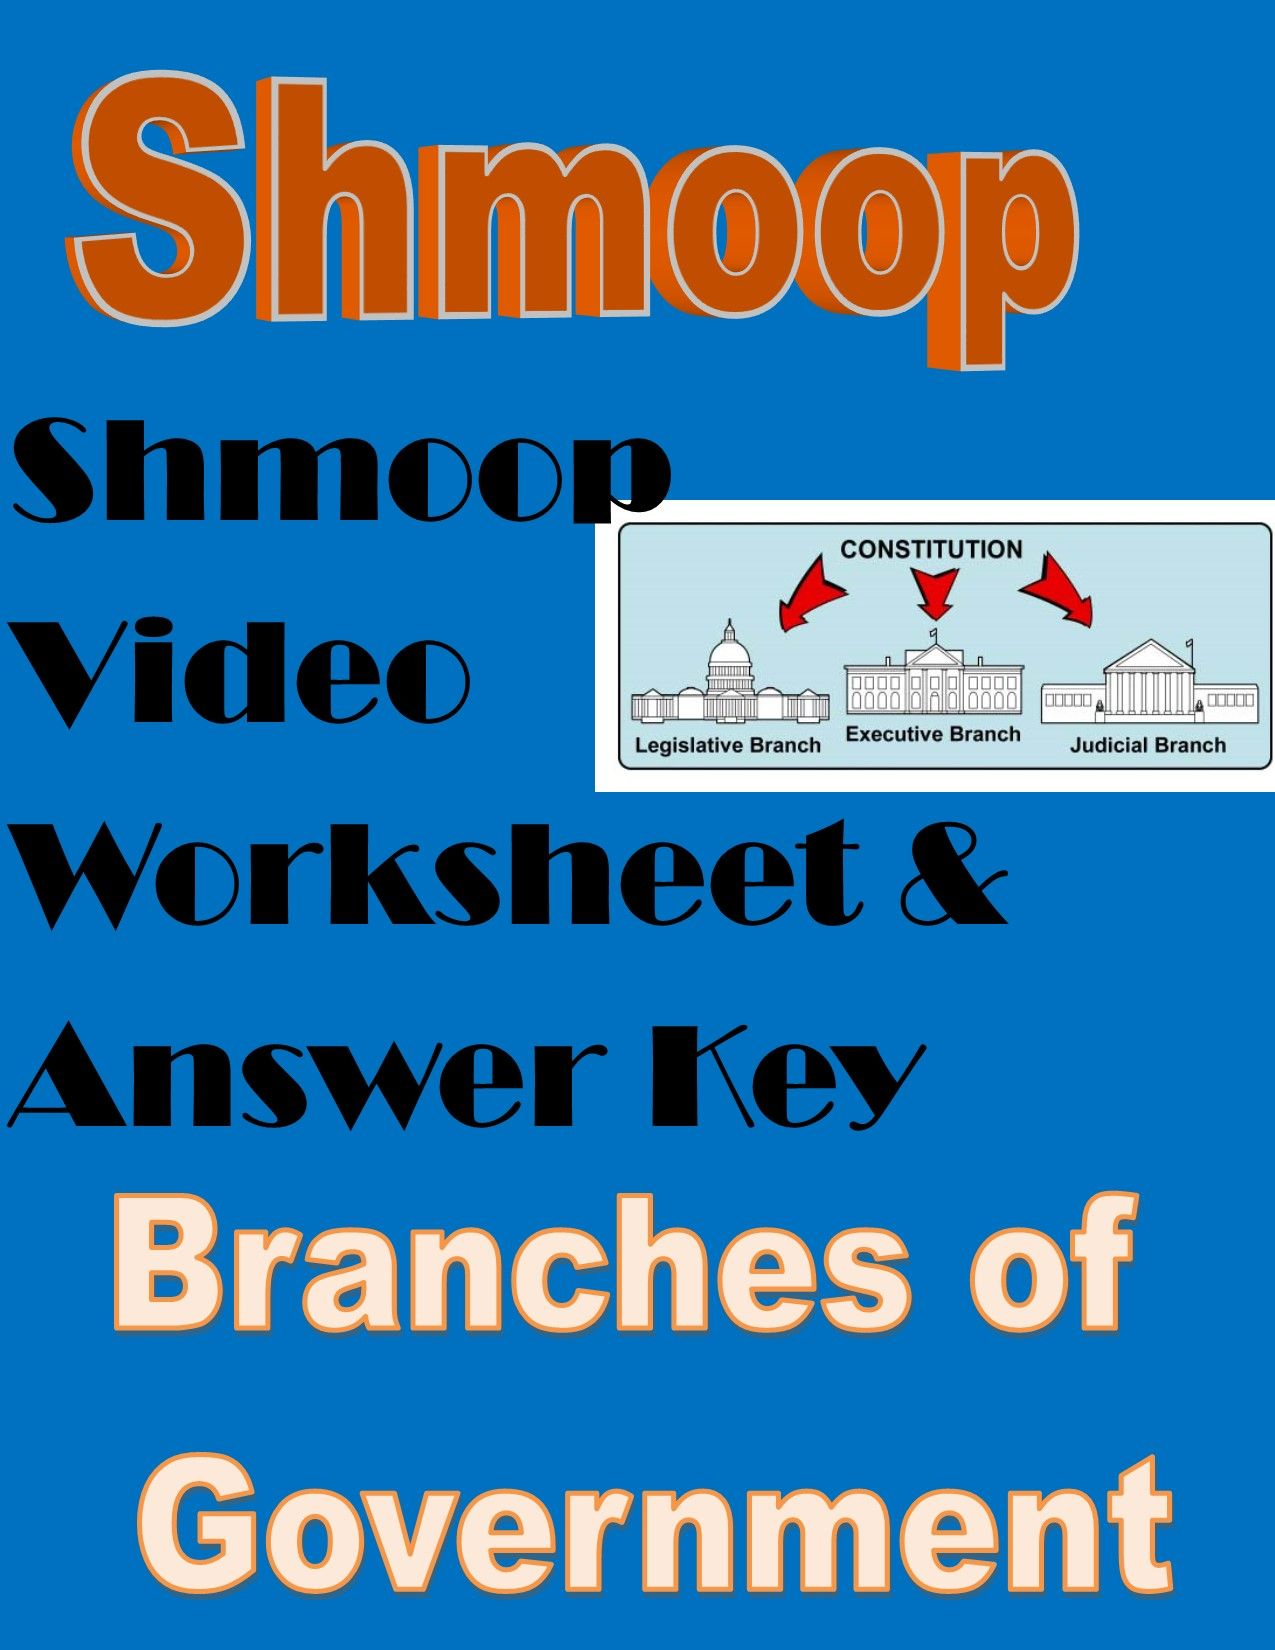 Branches Of Government Shmoop Video Worksheet Government